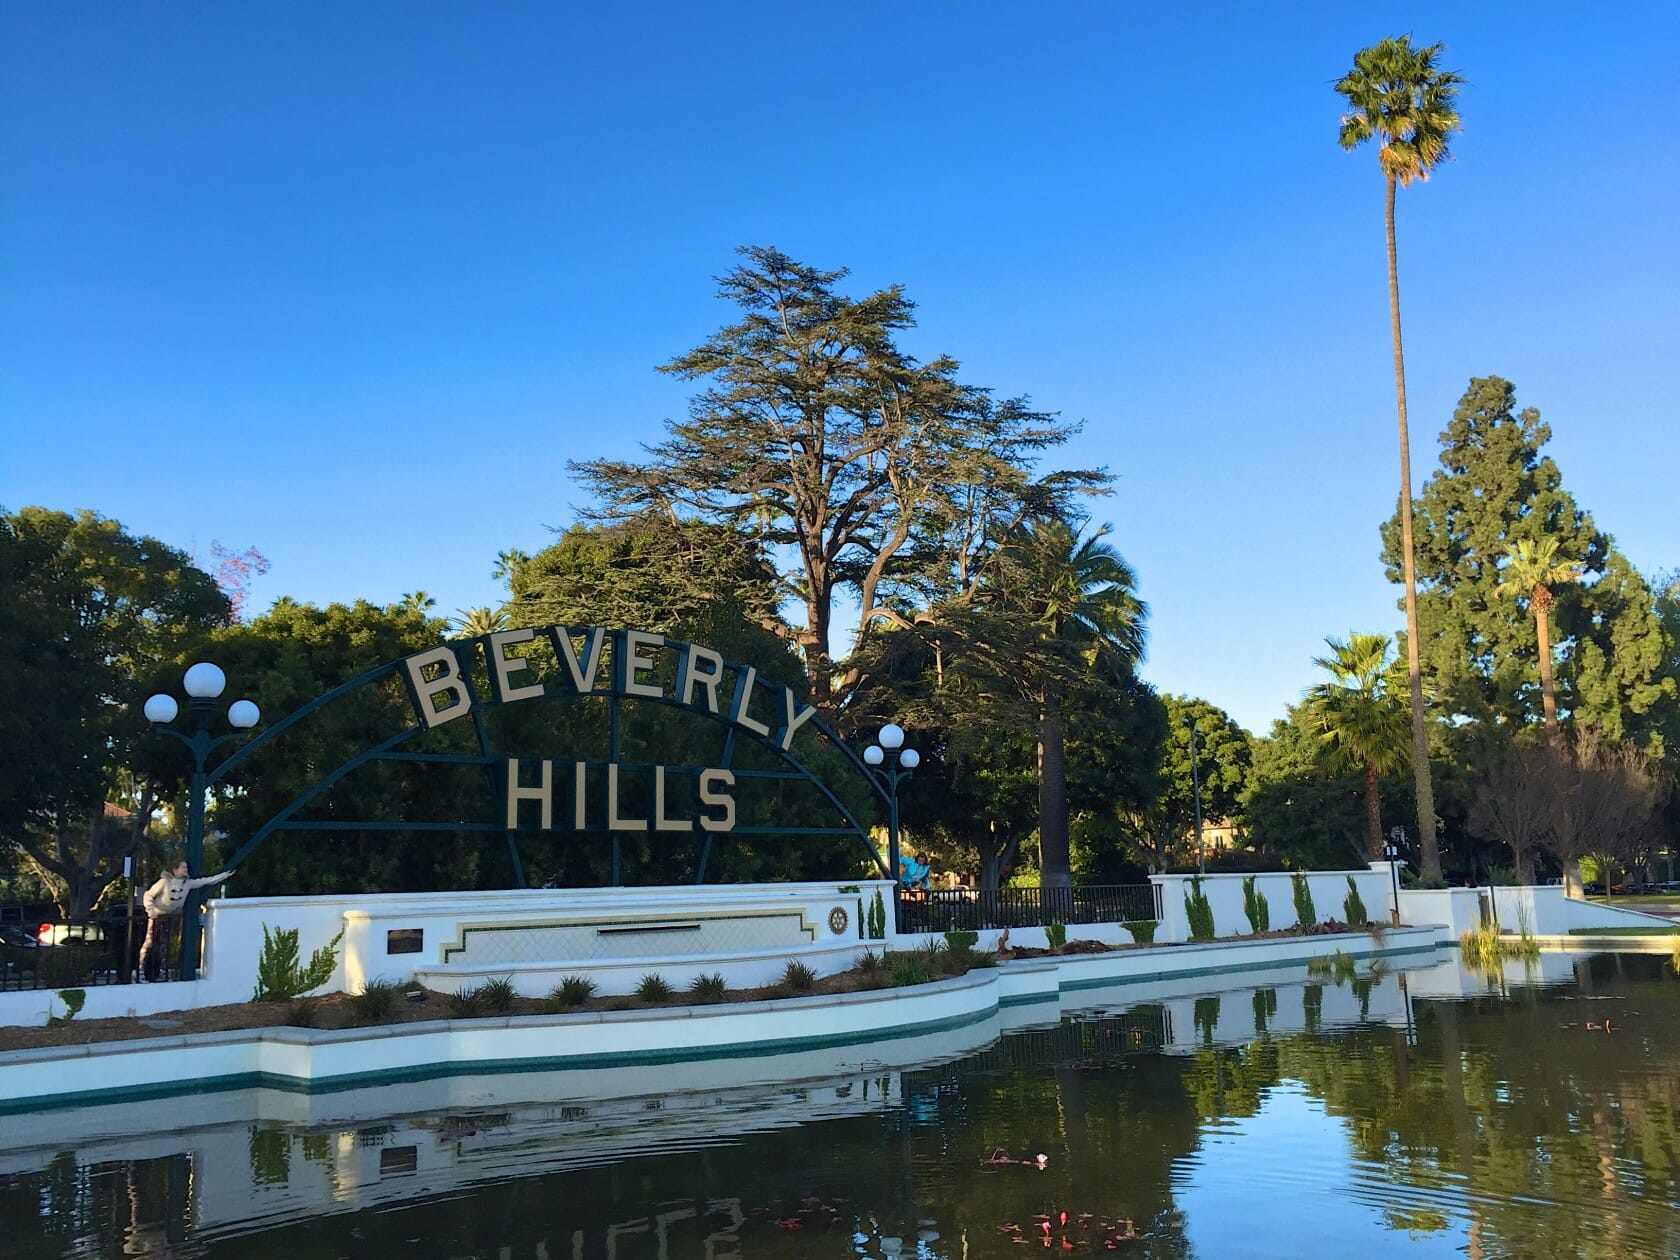 Luxurious Los Angeles day trips to satisfy any wanderlust cravings